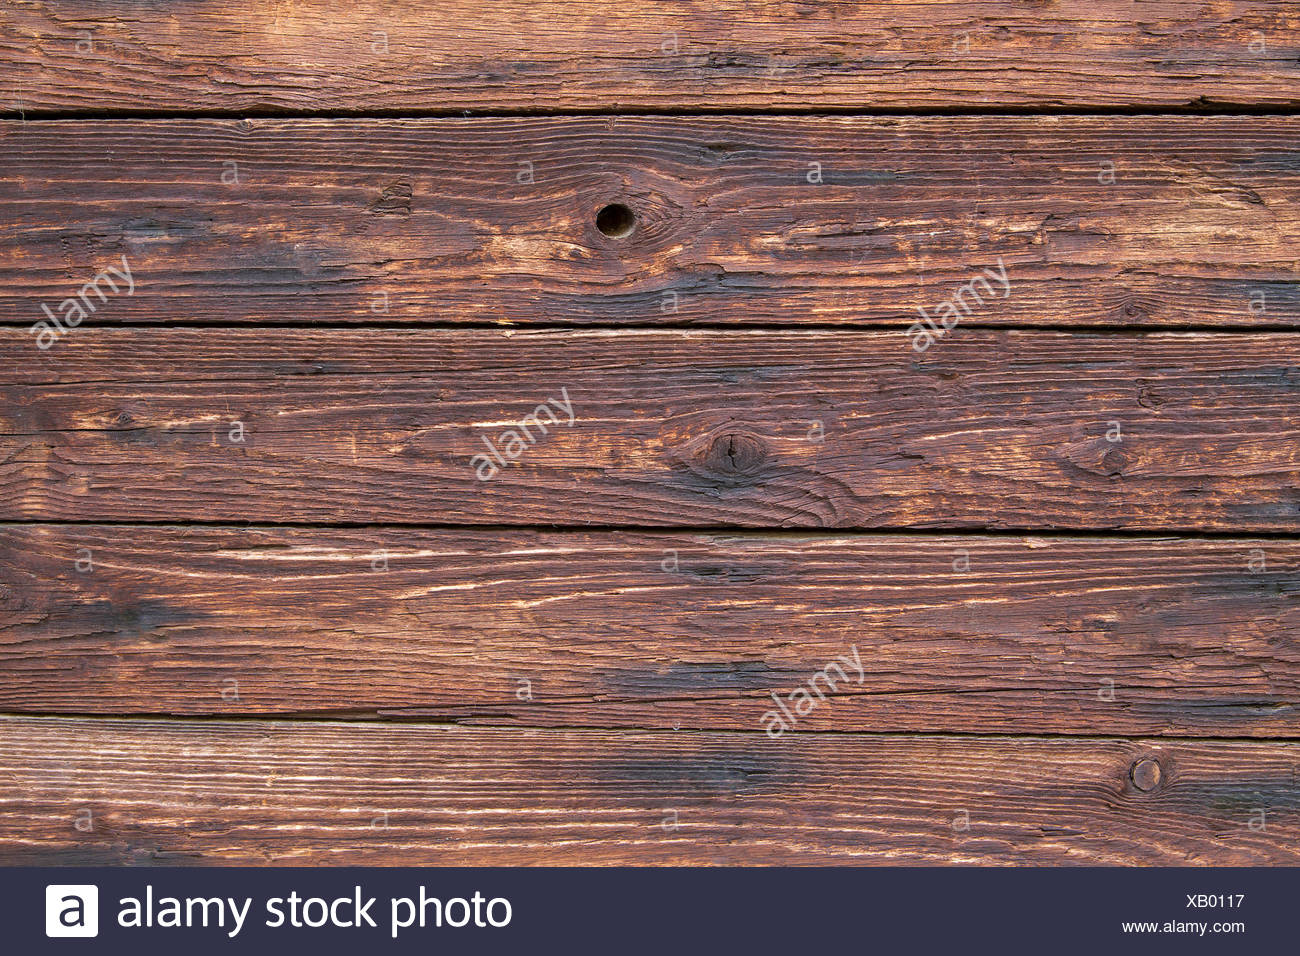 weathered wooden planks - Stock Image